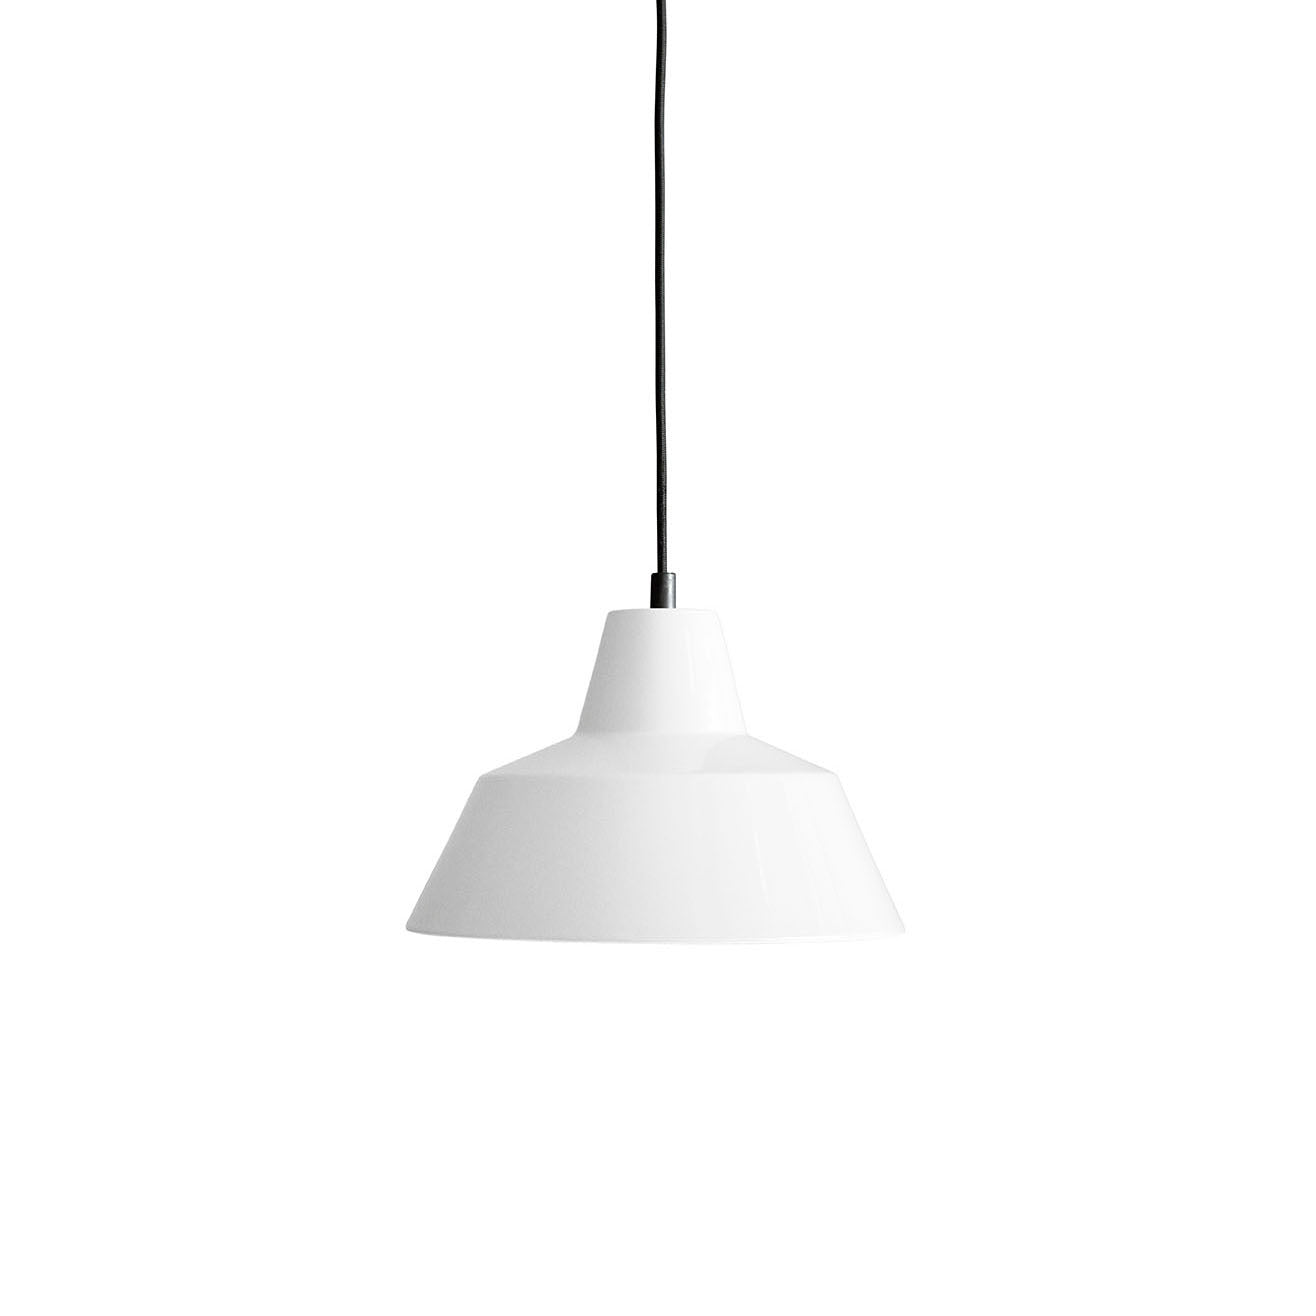 Workshop Pendant Lamp W2: White